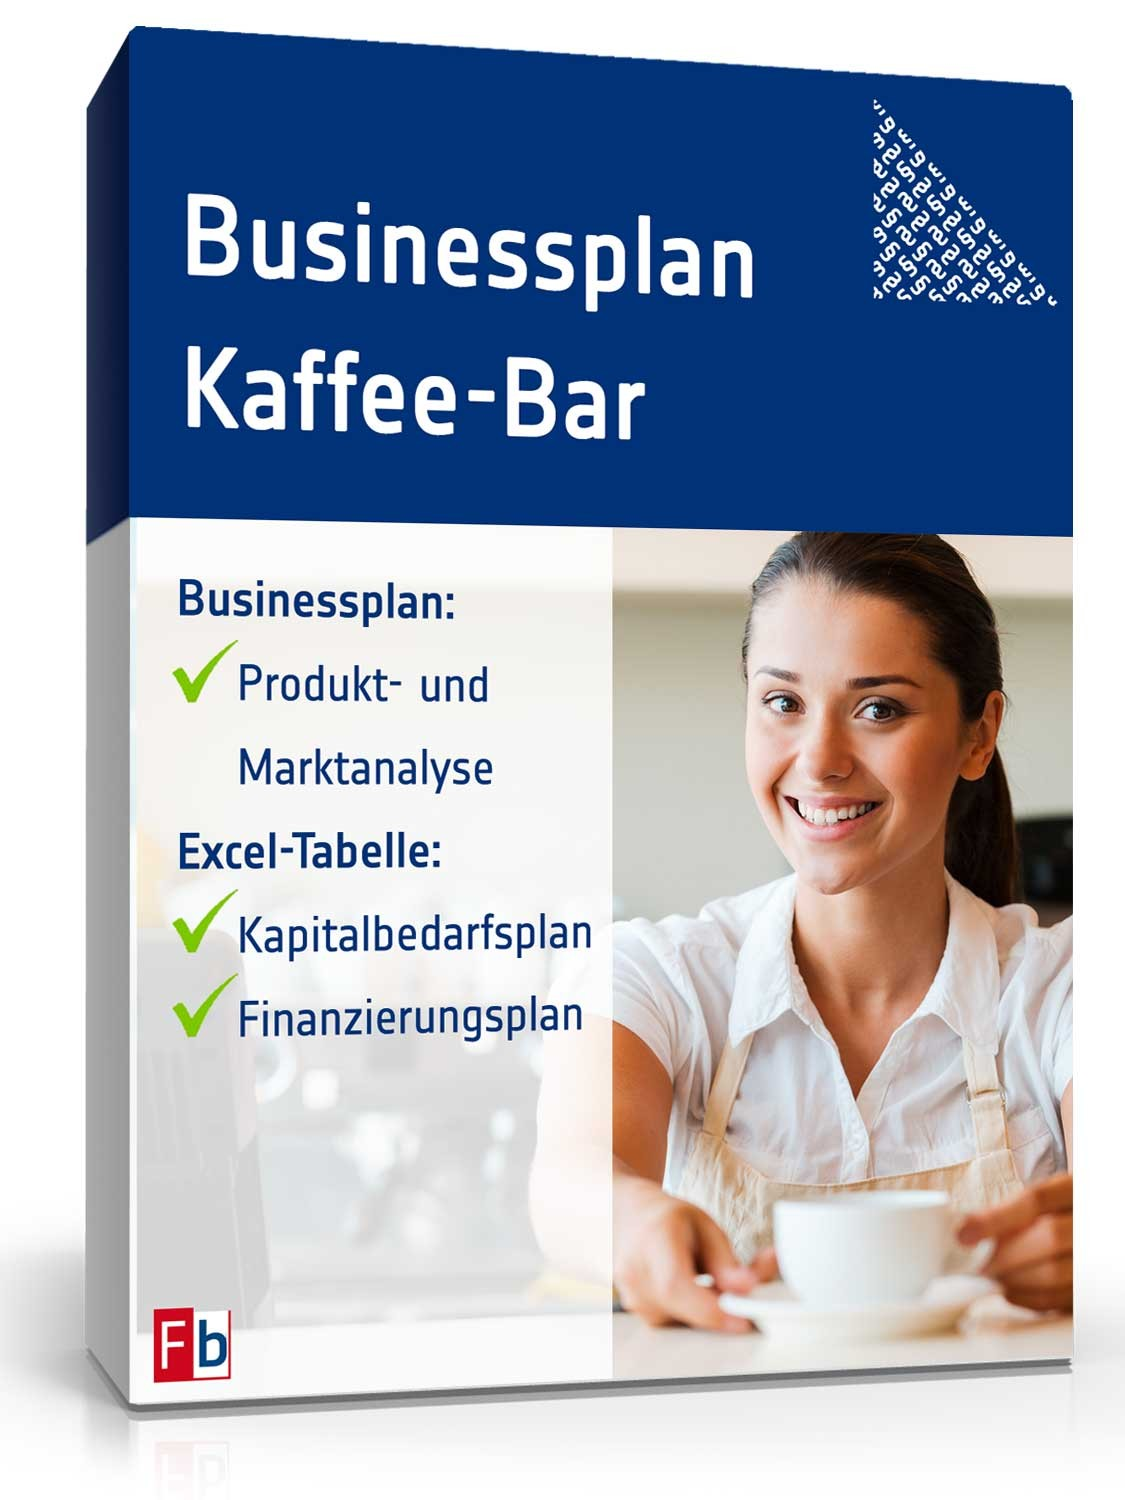 Businessplan Kaffee-Bar